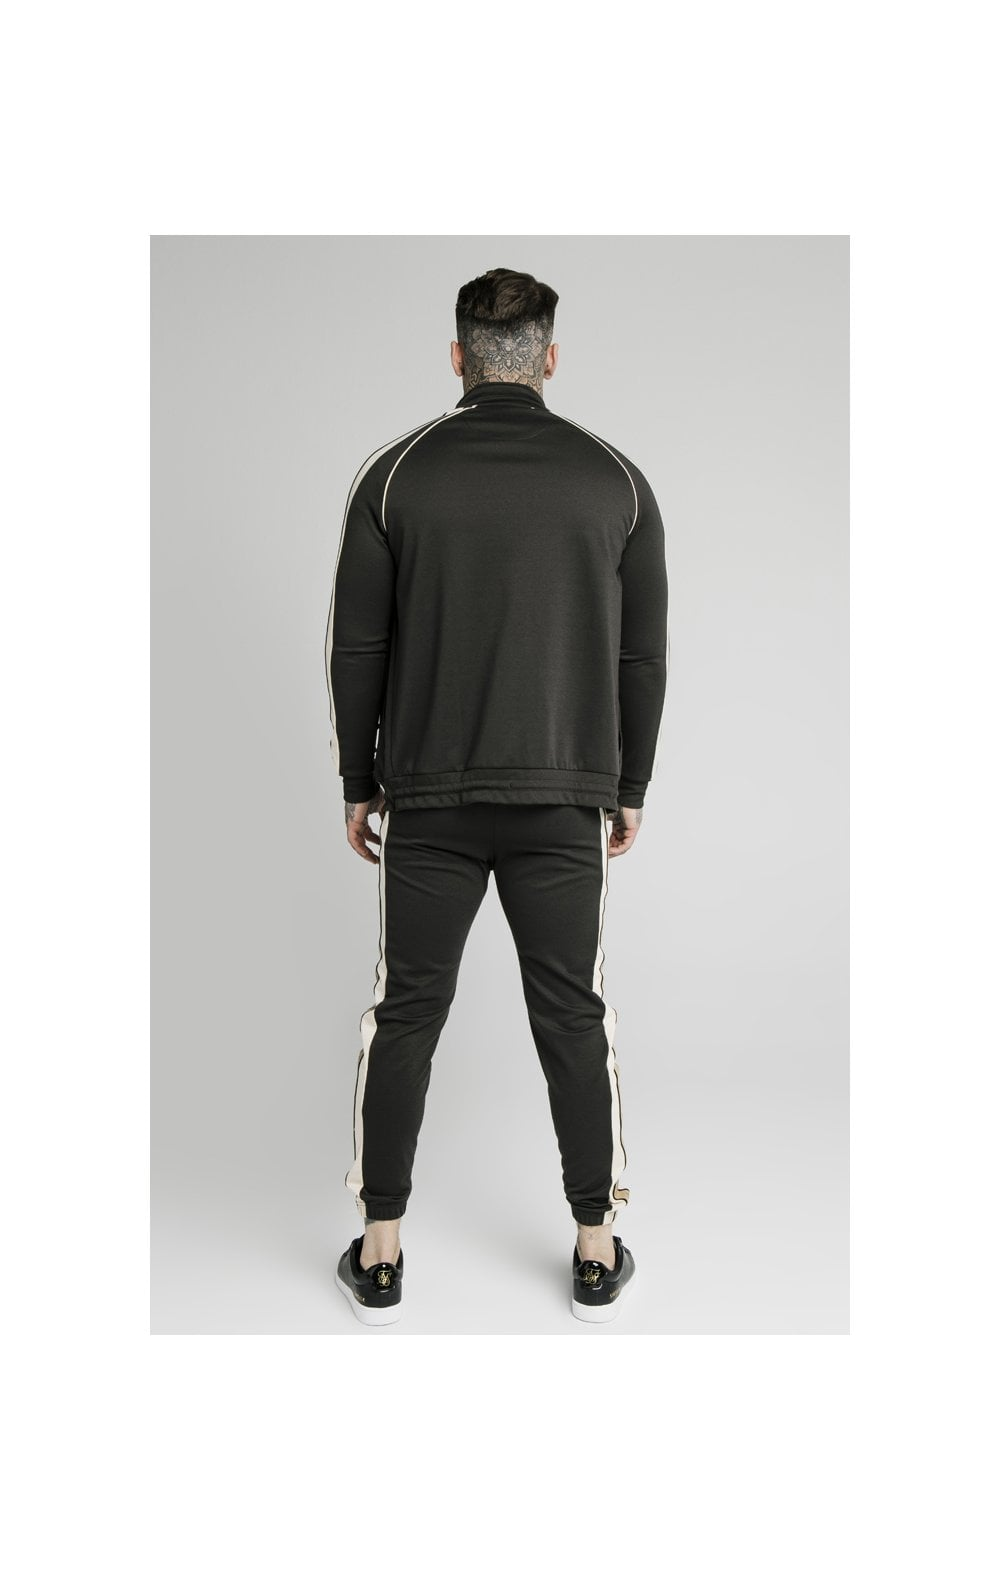 Load image into Gallery viewer, SikSilk Premium Tape Funnel Zip Through Hoodie - Anthracite (6)